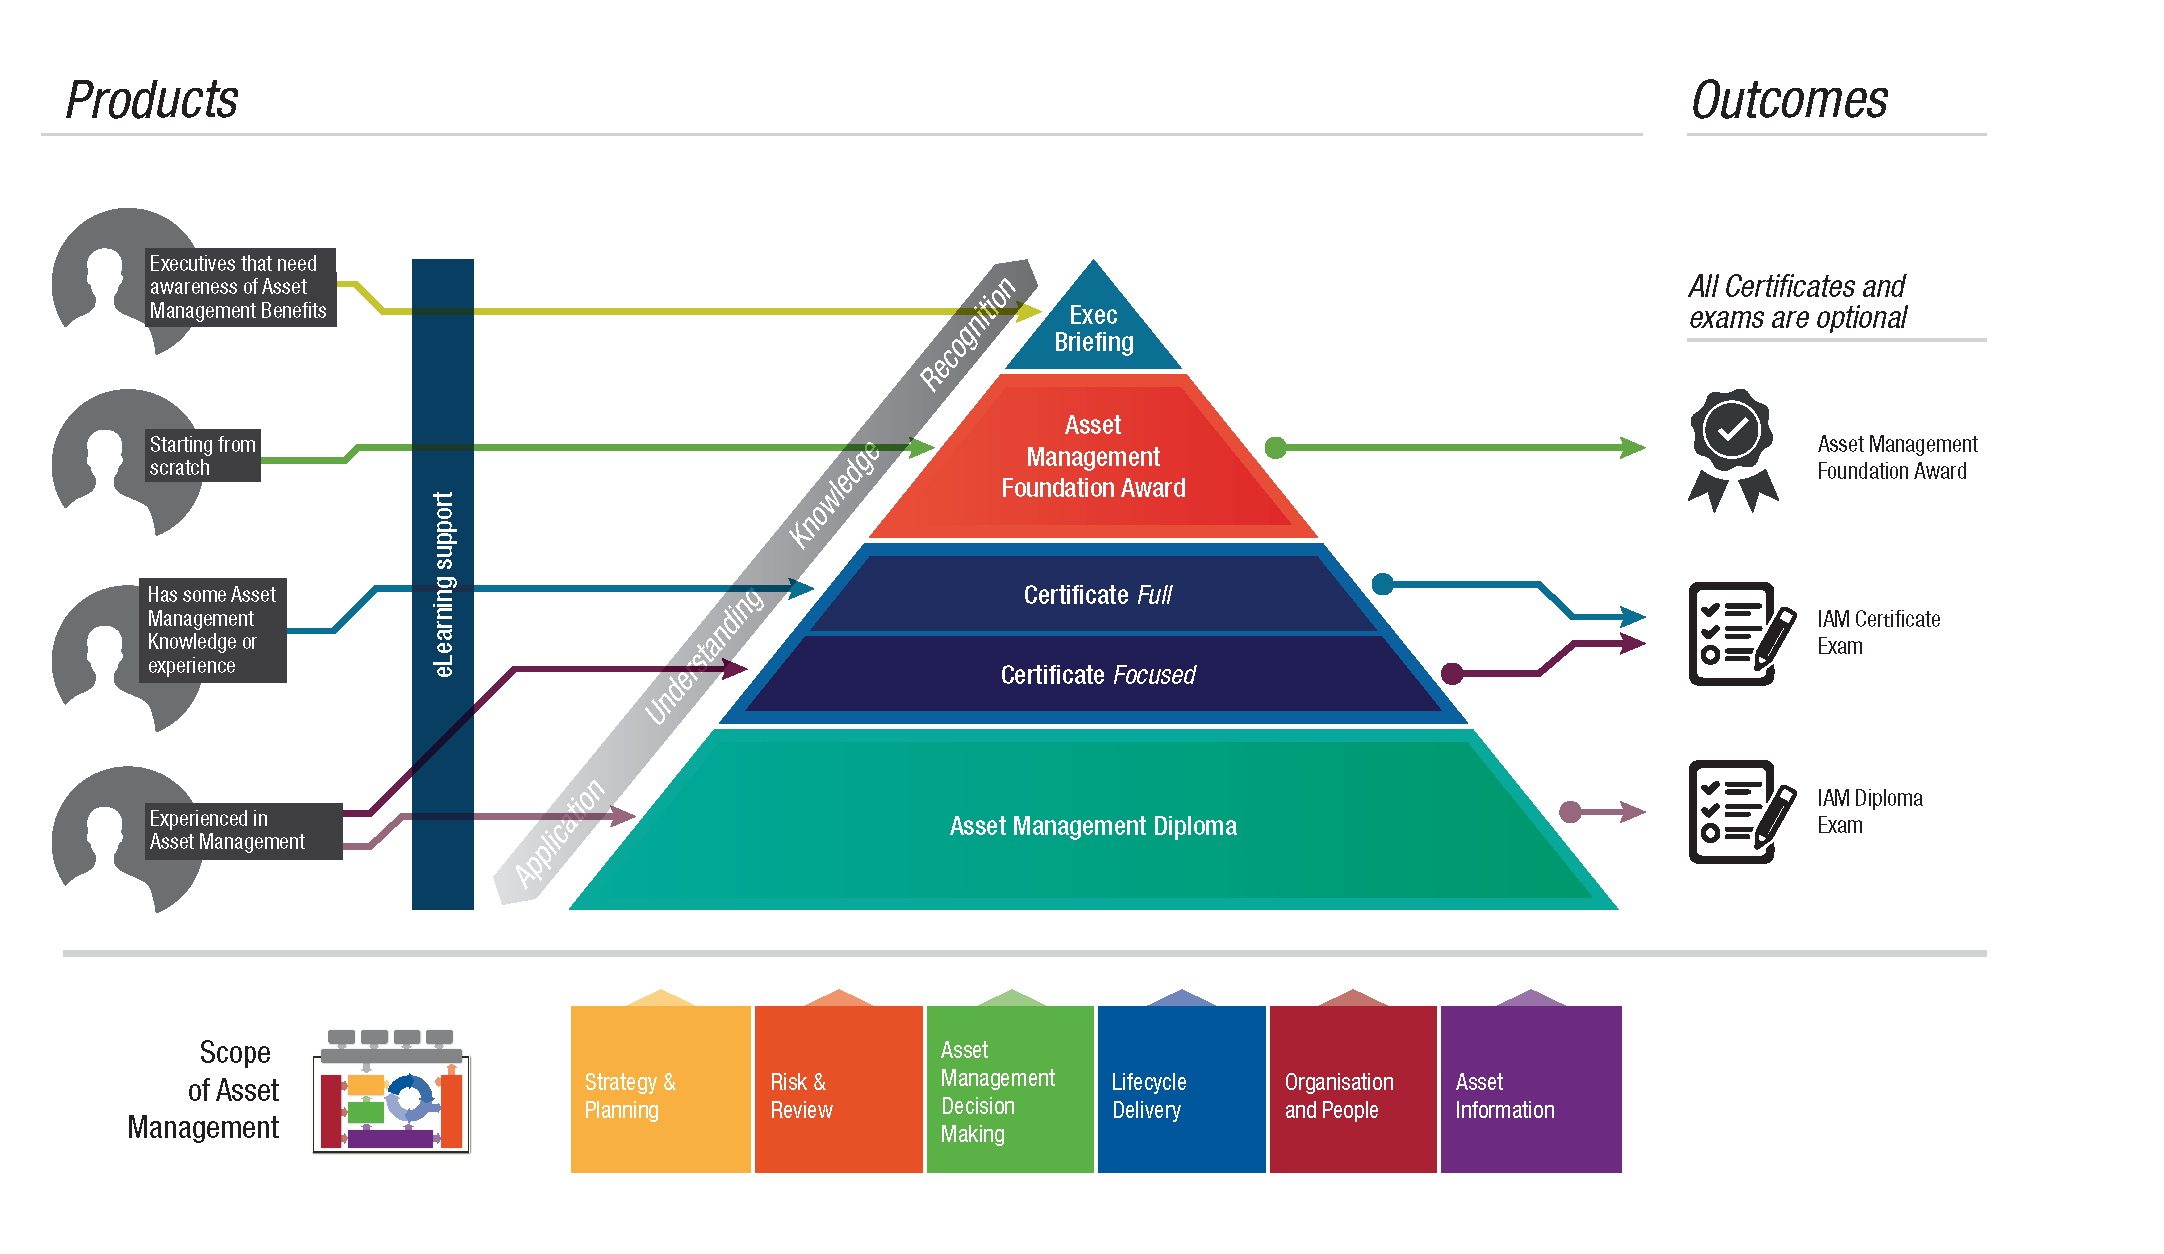 Asset Management Courses Hierarchy showing the routes to Asset Management Chartership and experience levels required